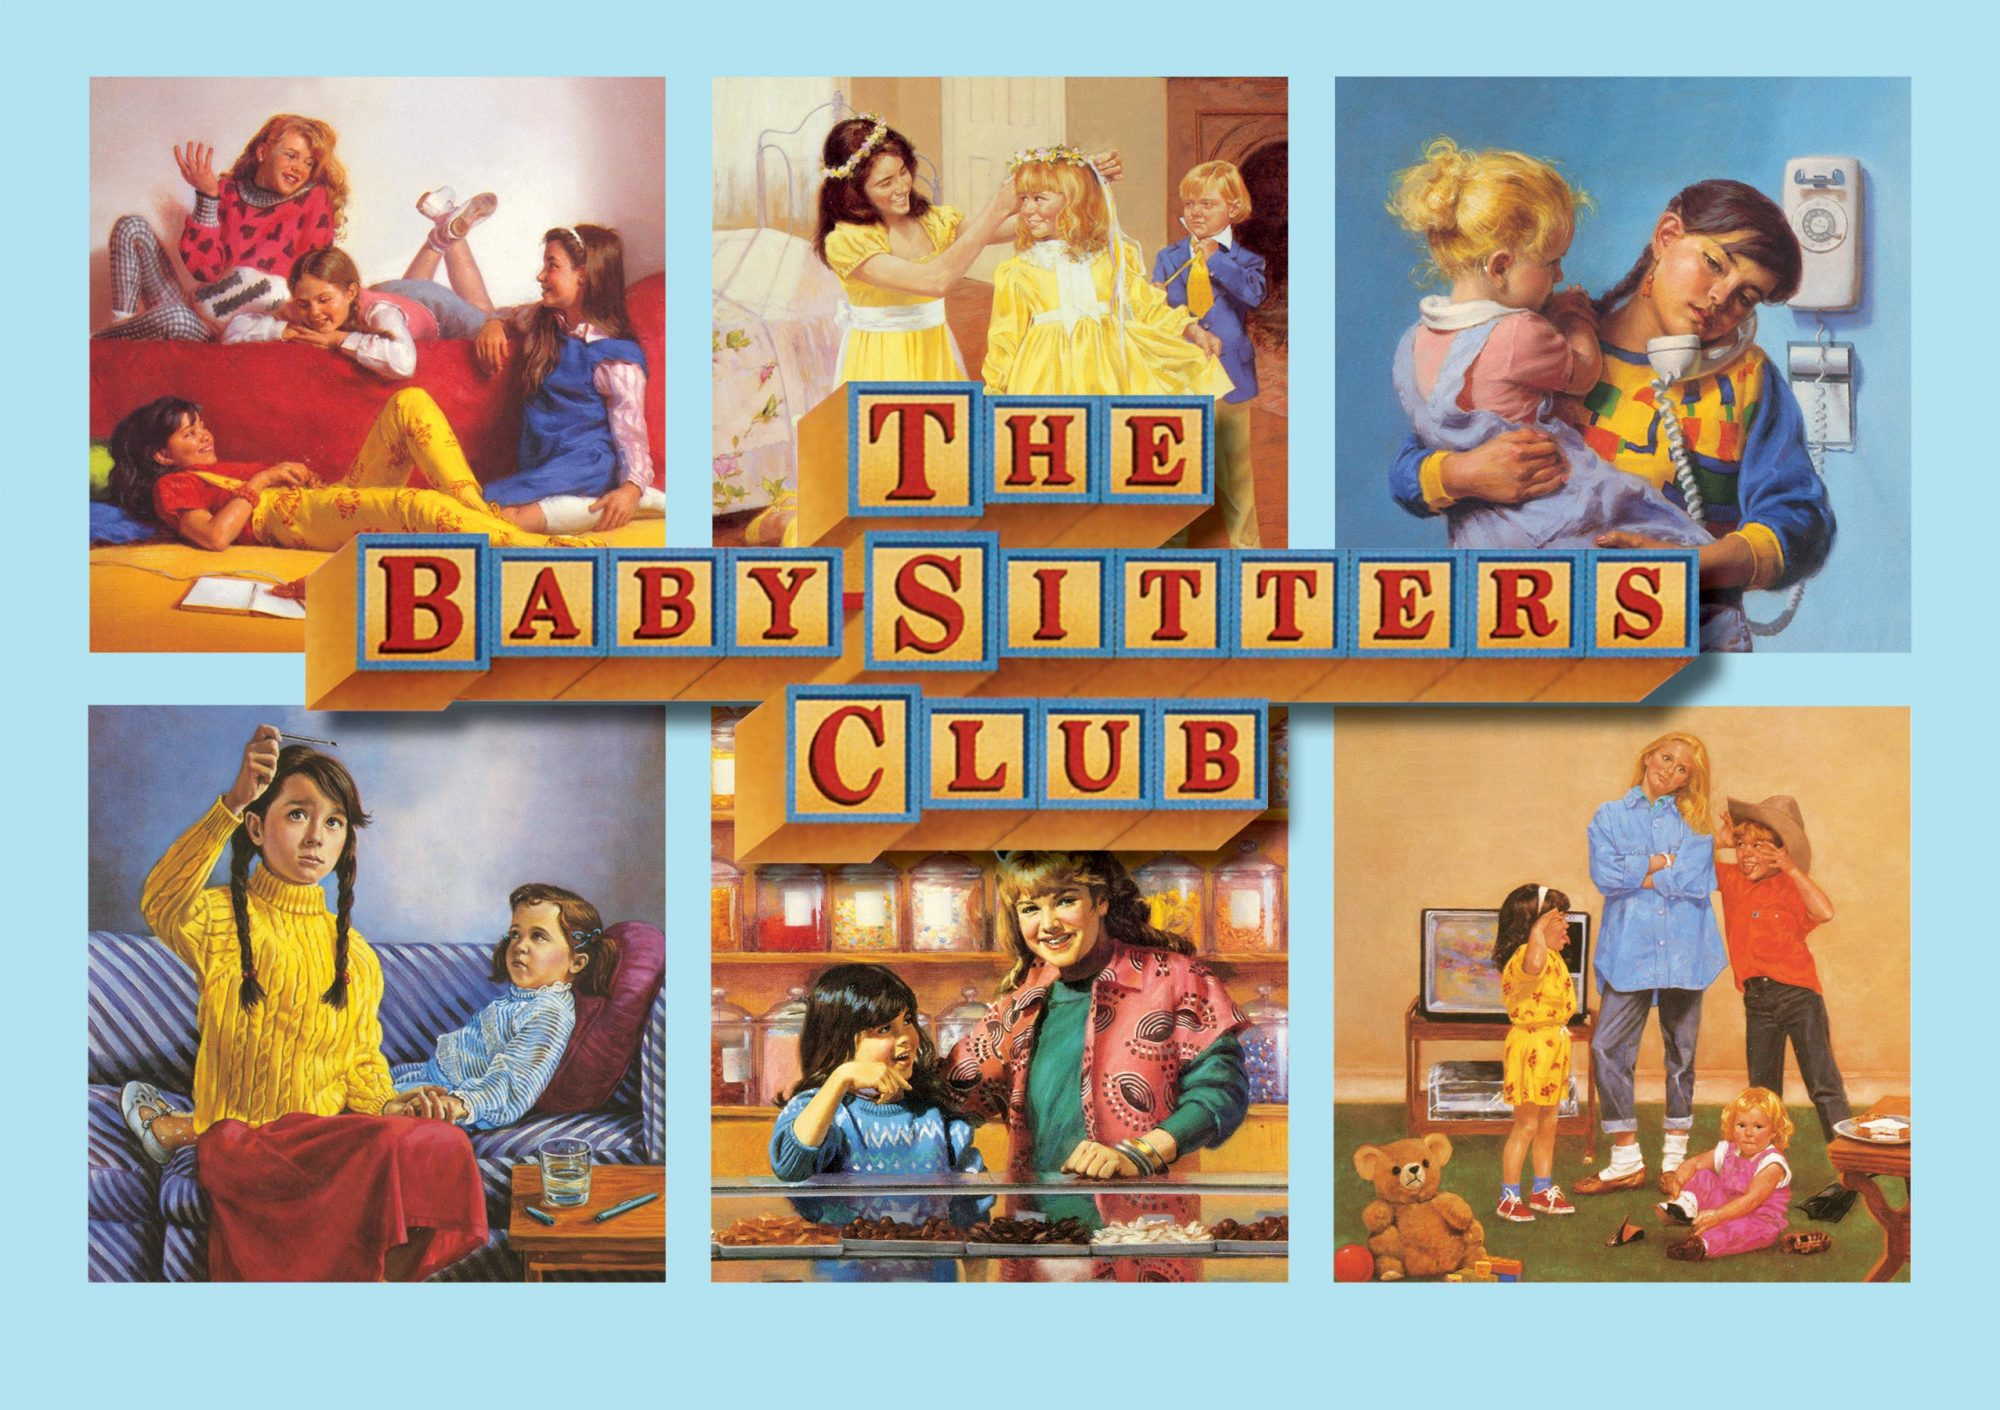 The-Baby-Sitters-Club-Image-2